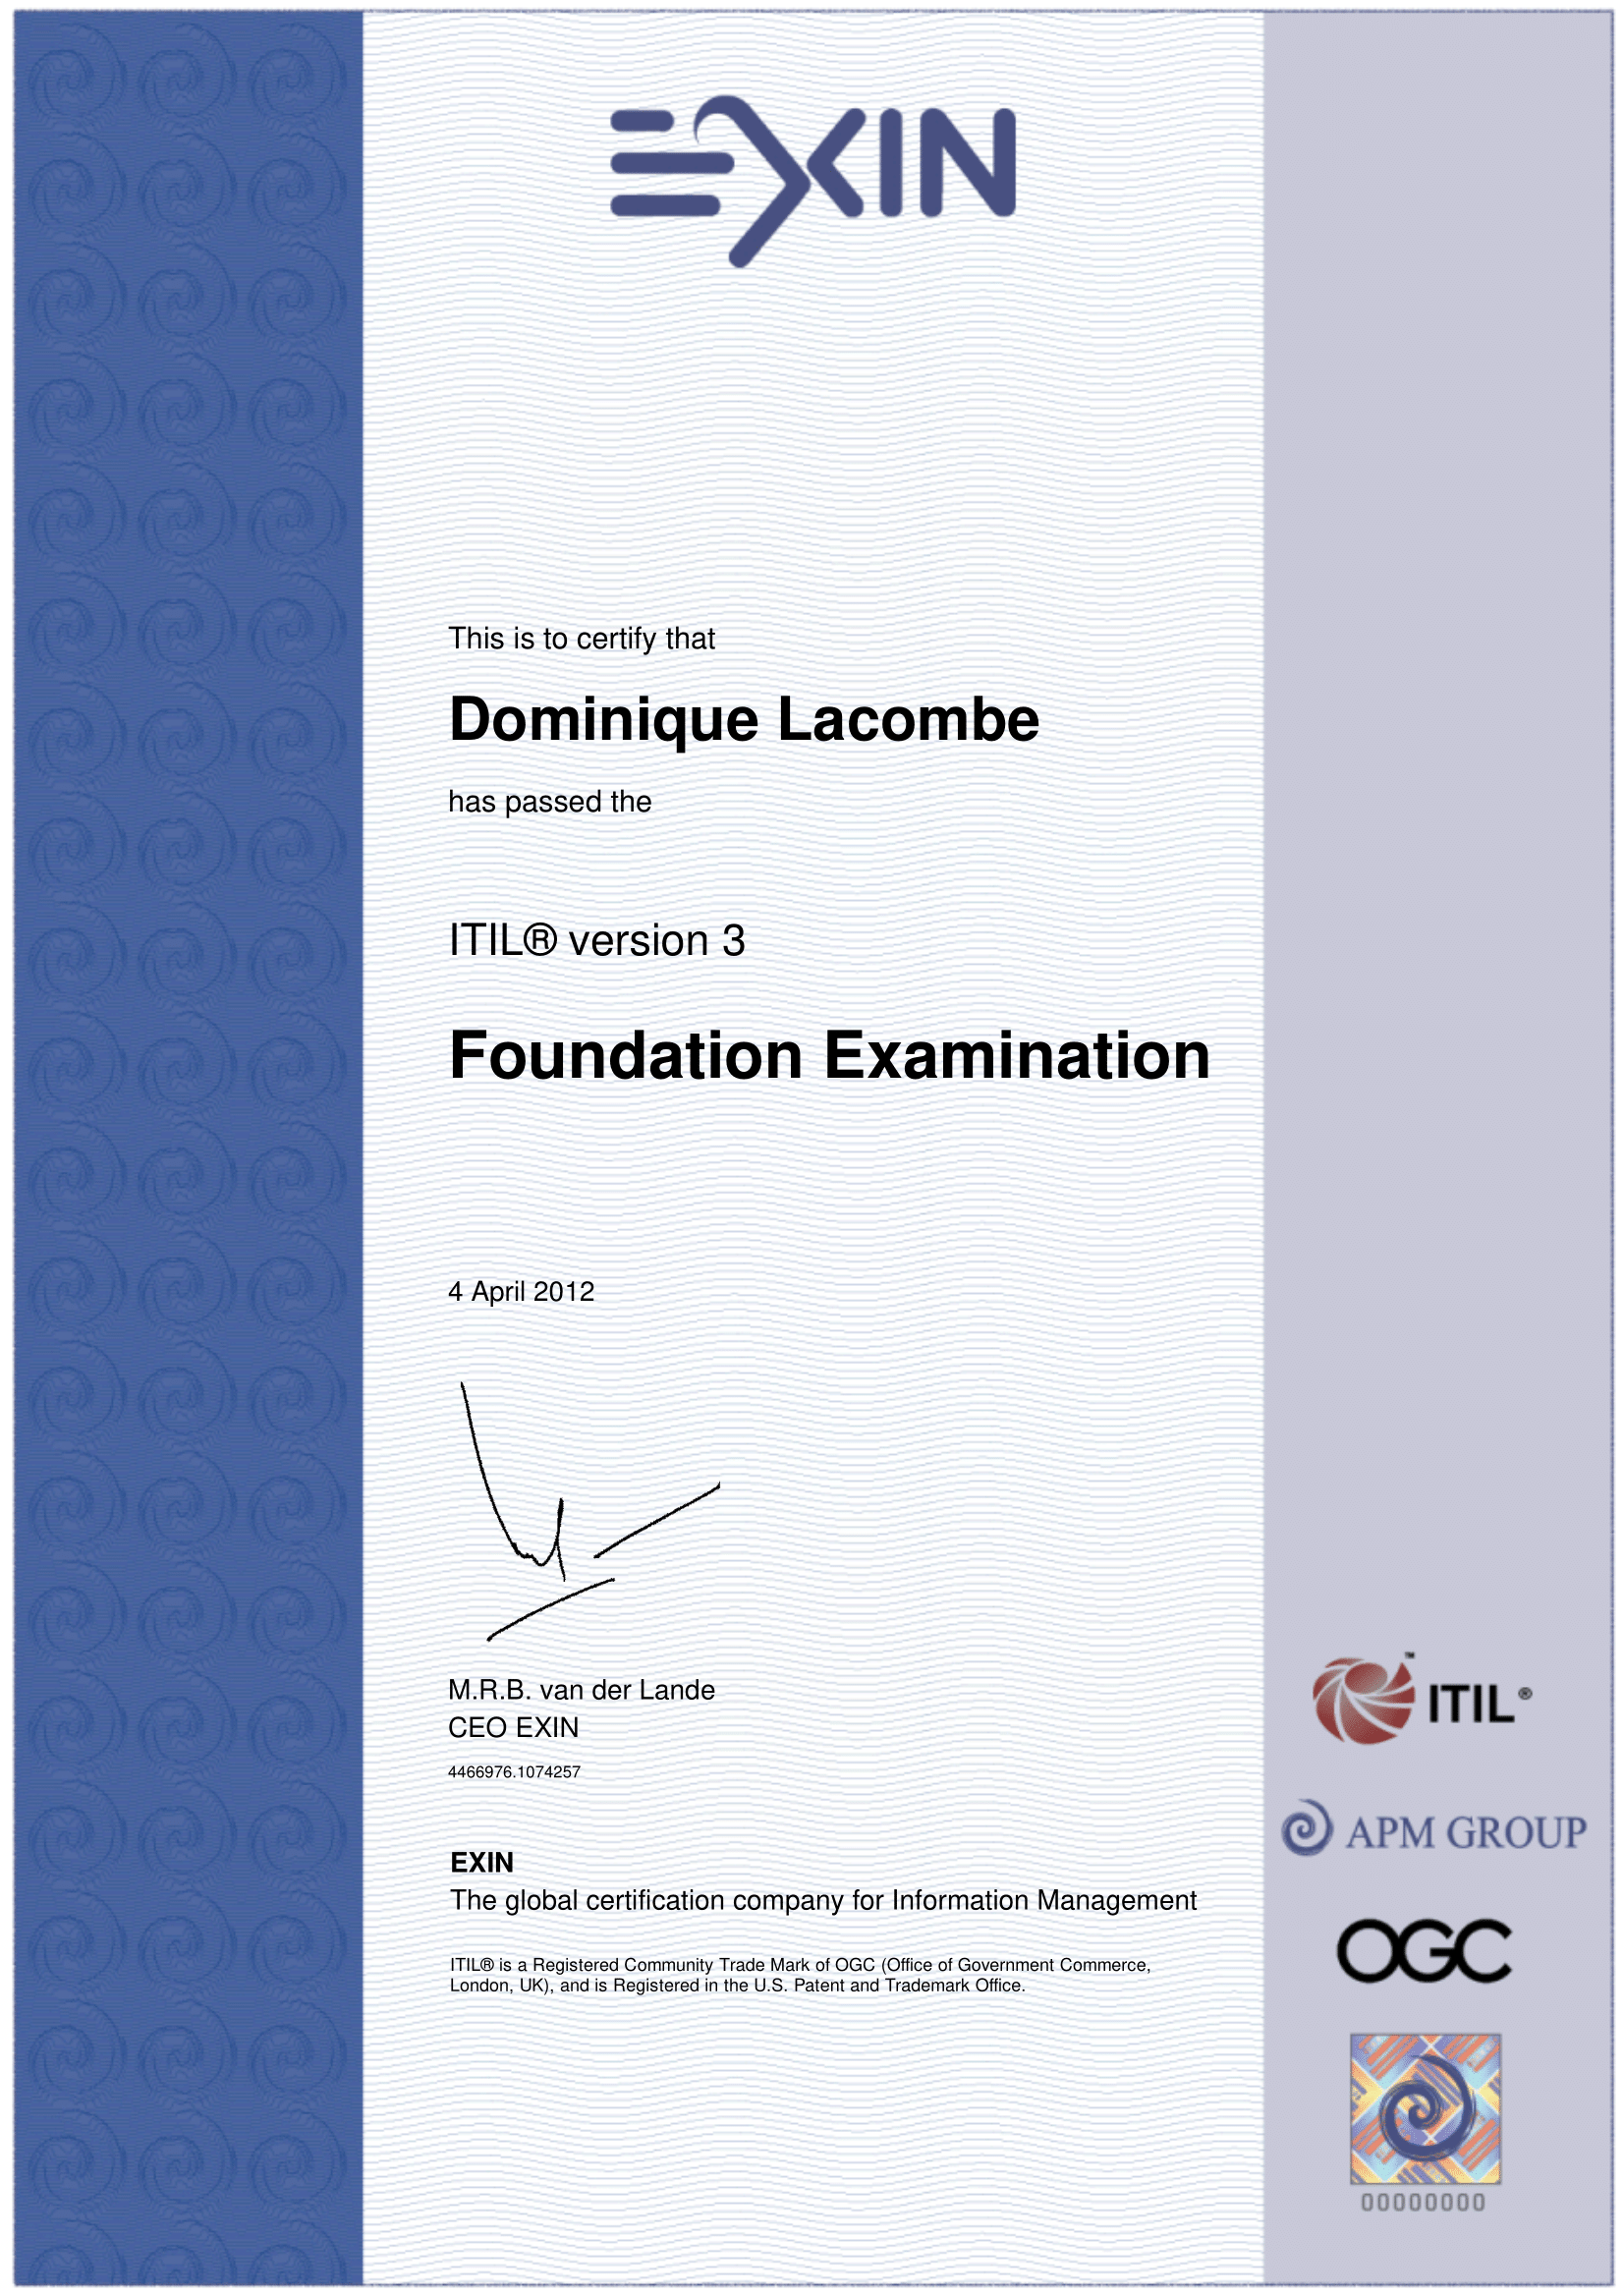 04-2012 - 12-2099 : Certification ITIL - EXIN